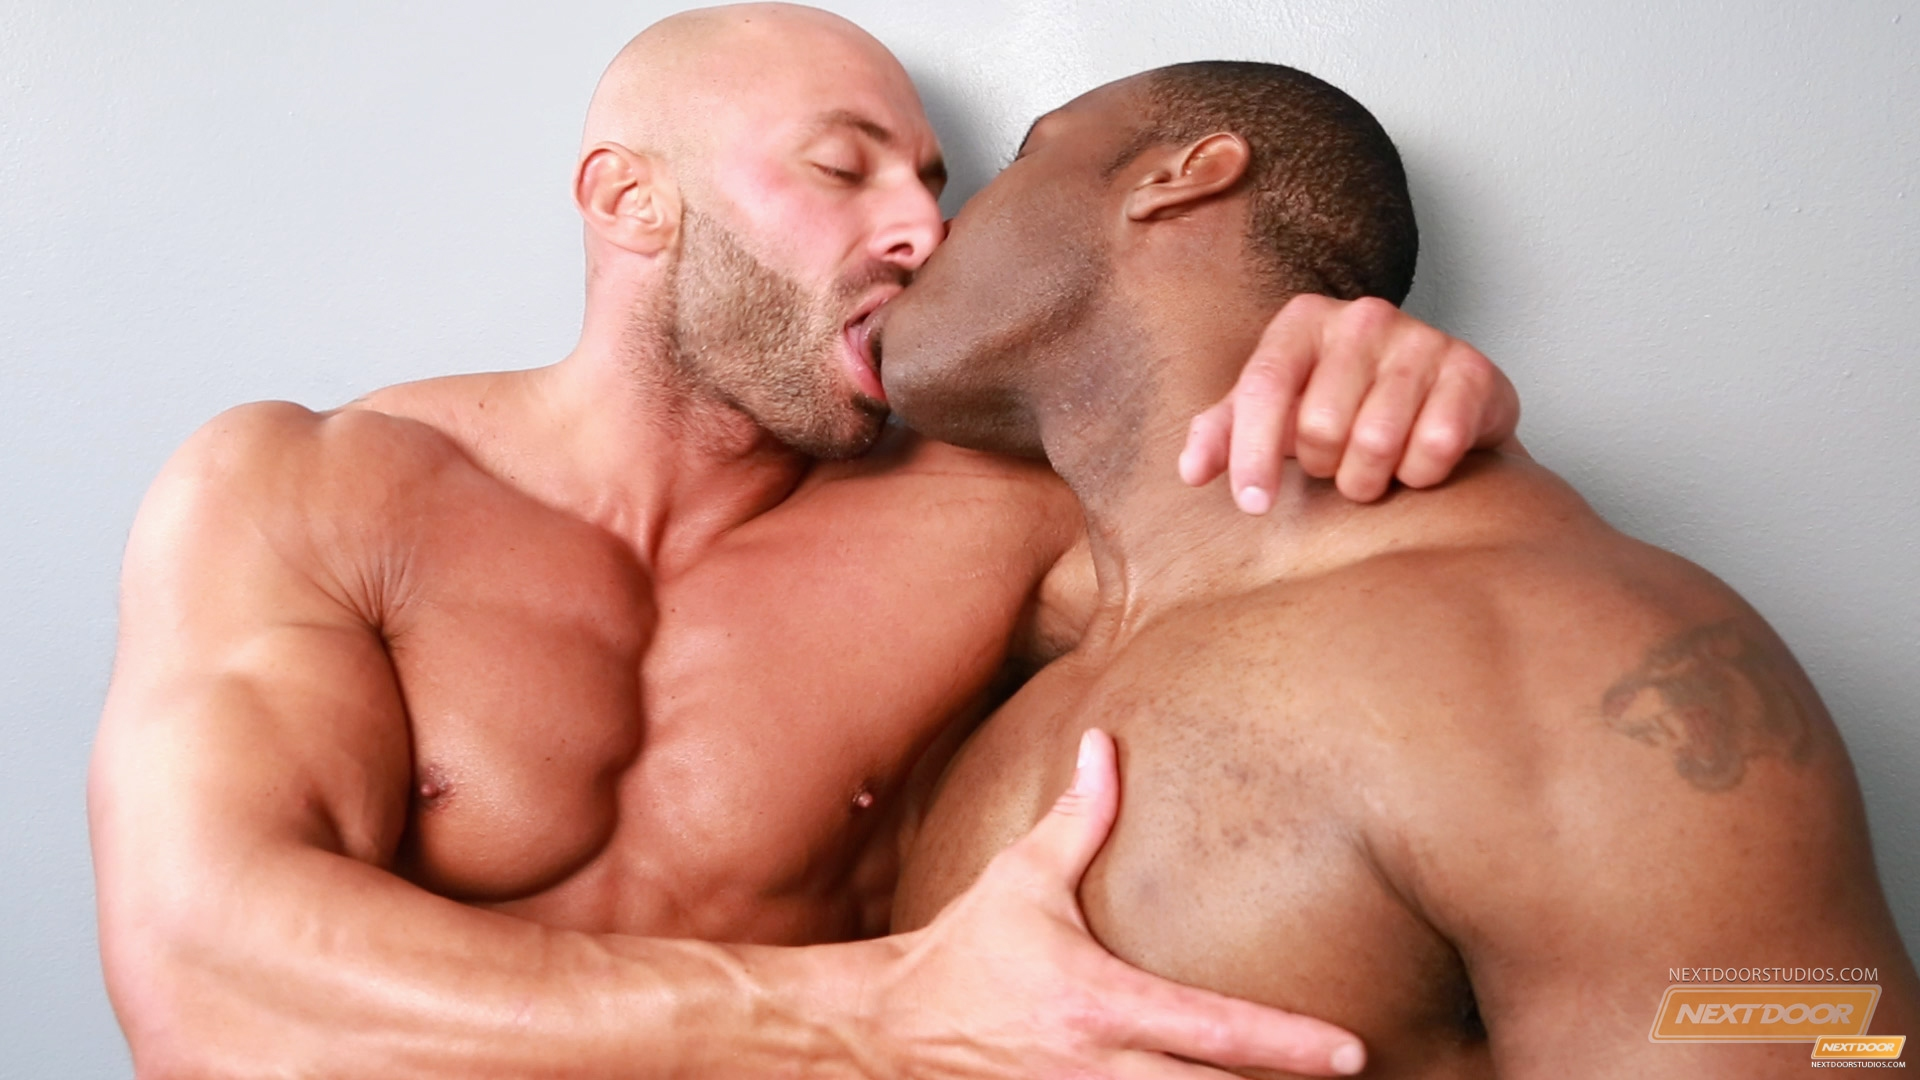 News: Survey Reveals Racism is Still a Problem in The Gay Community